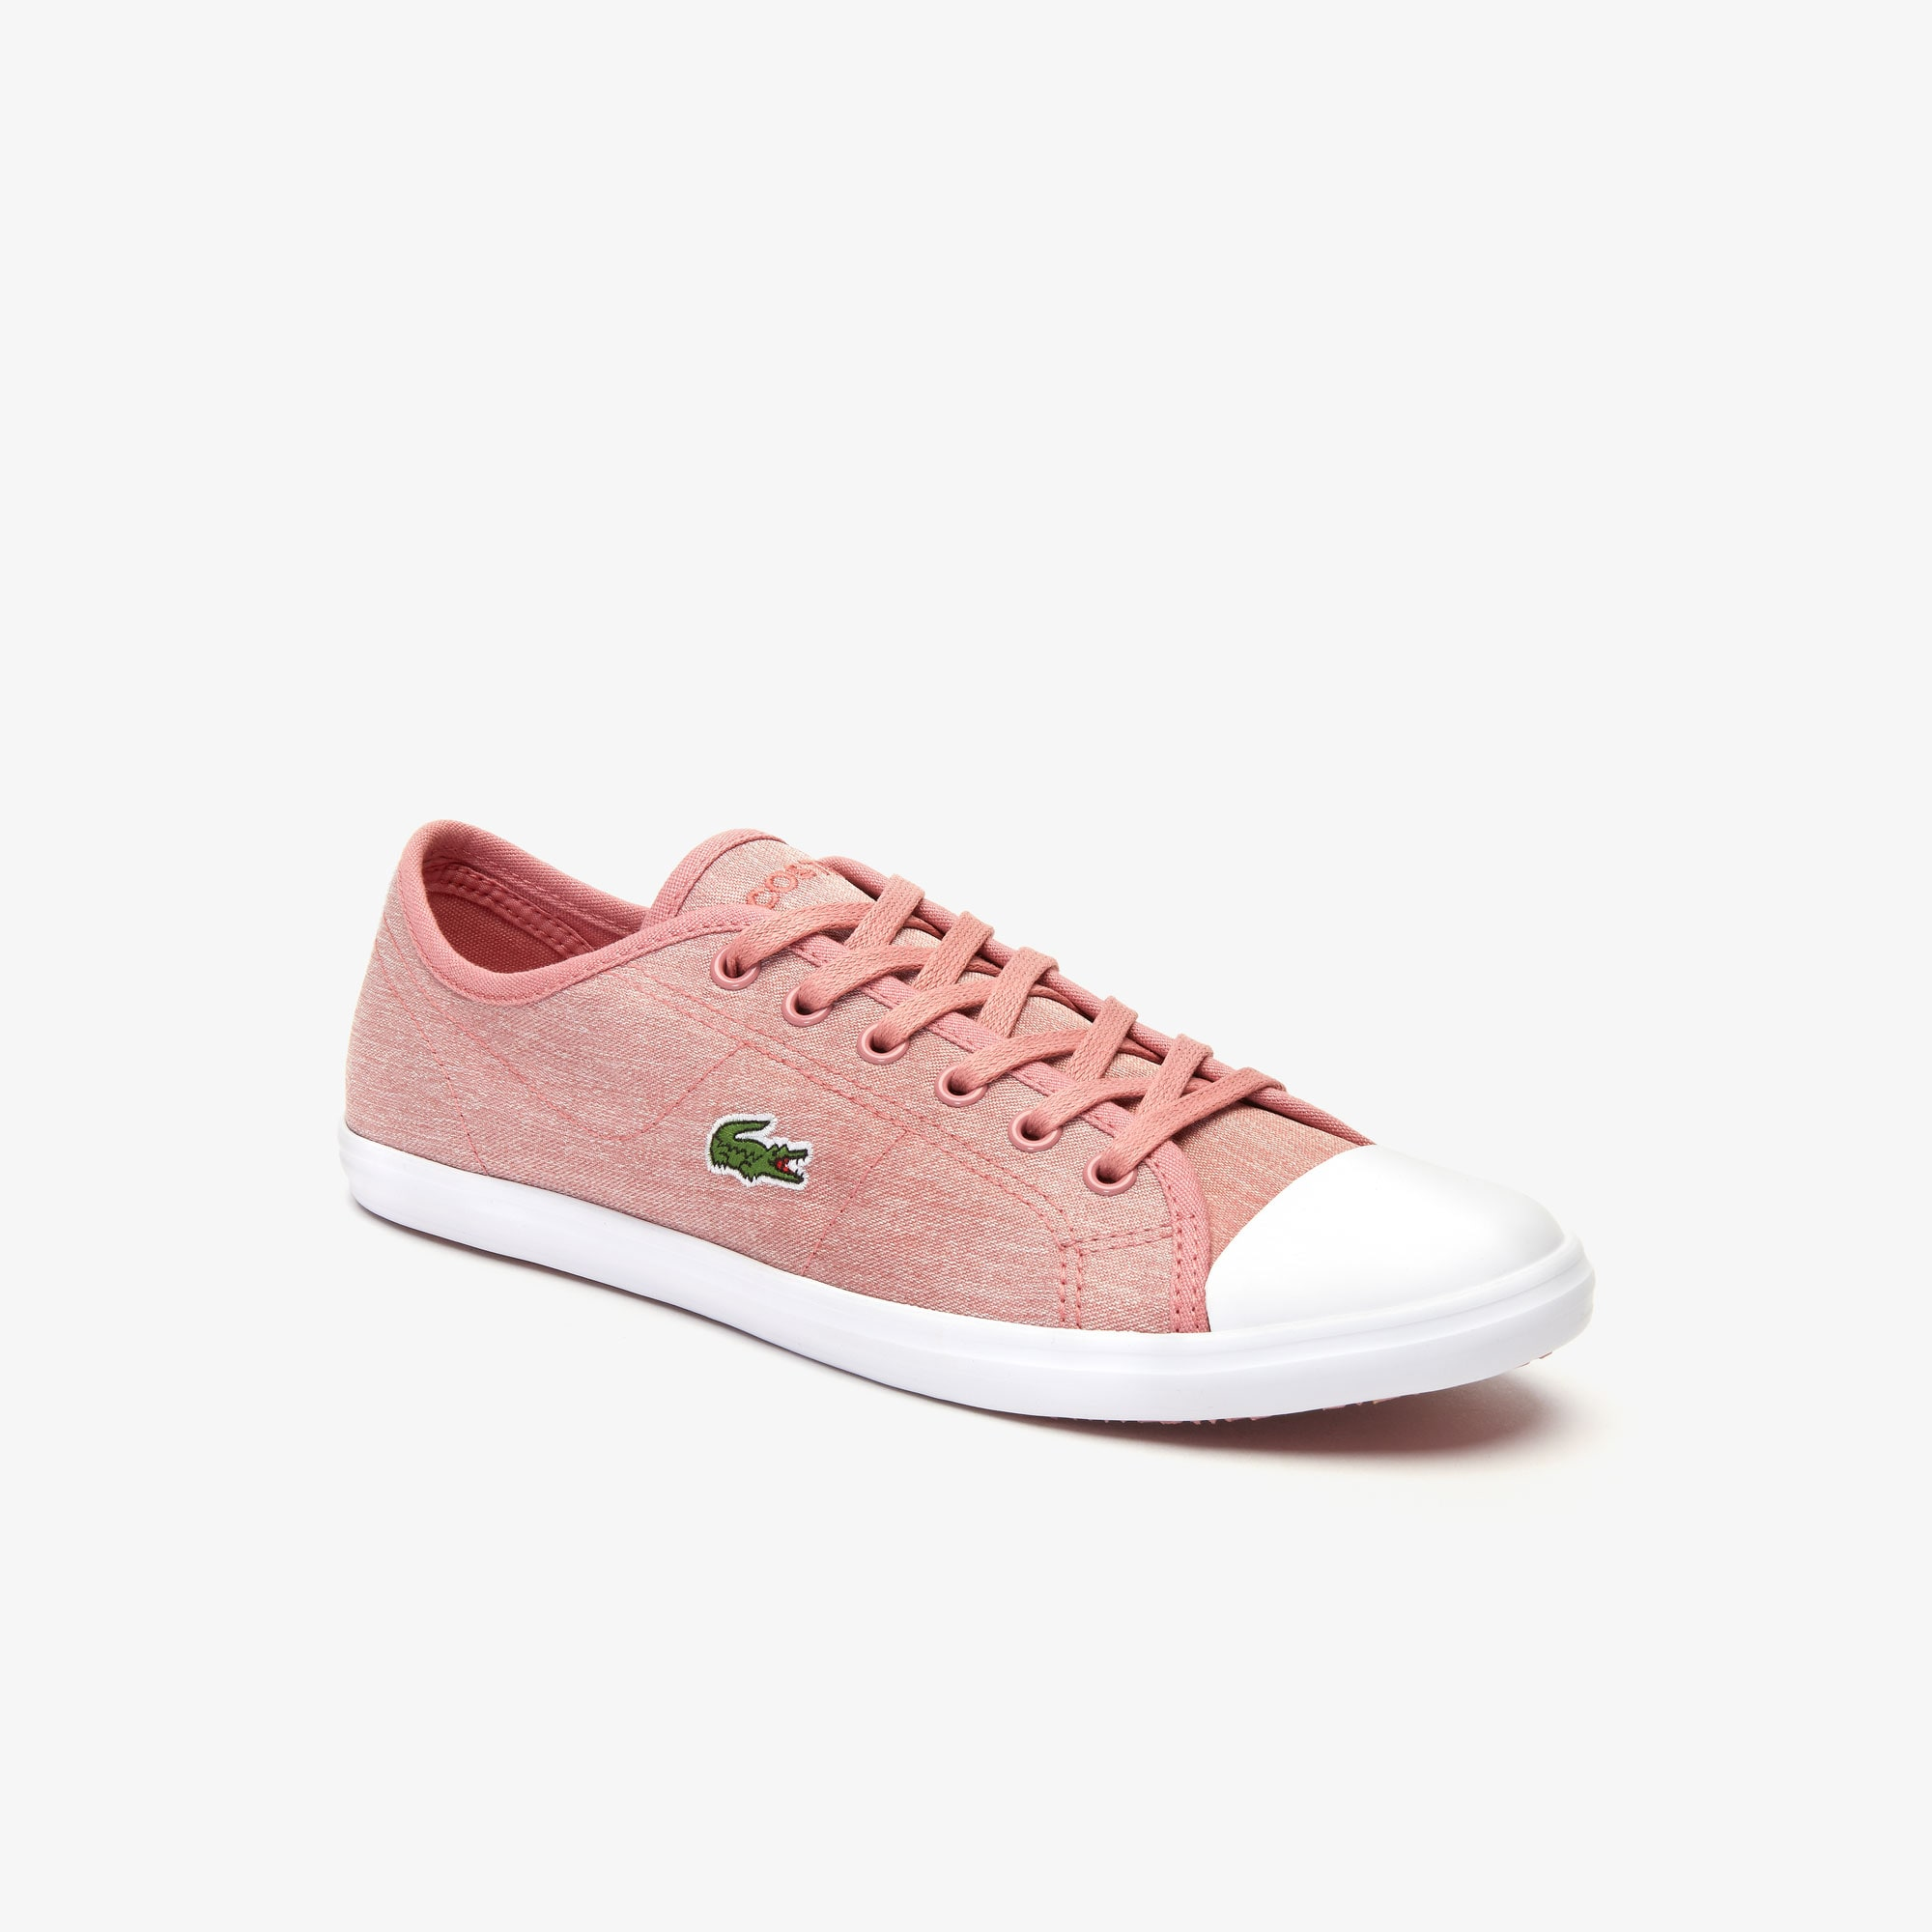 Lacoste shoes for women: Boots